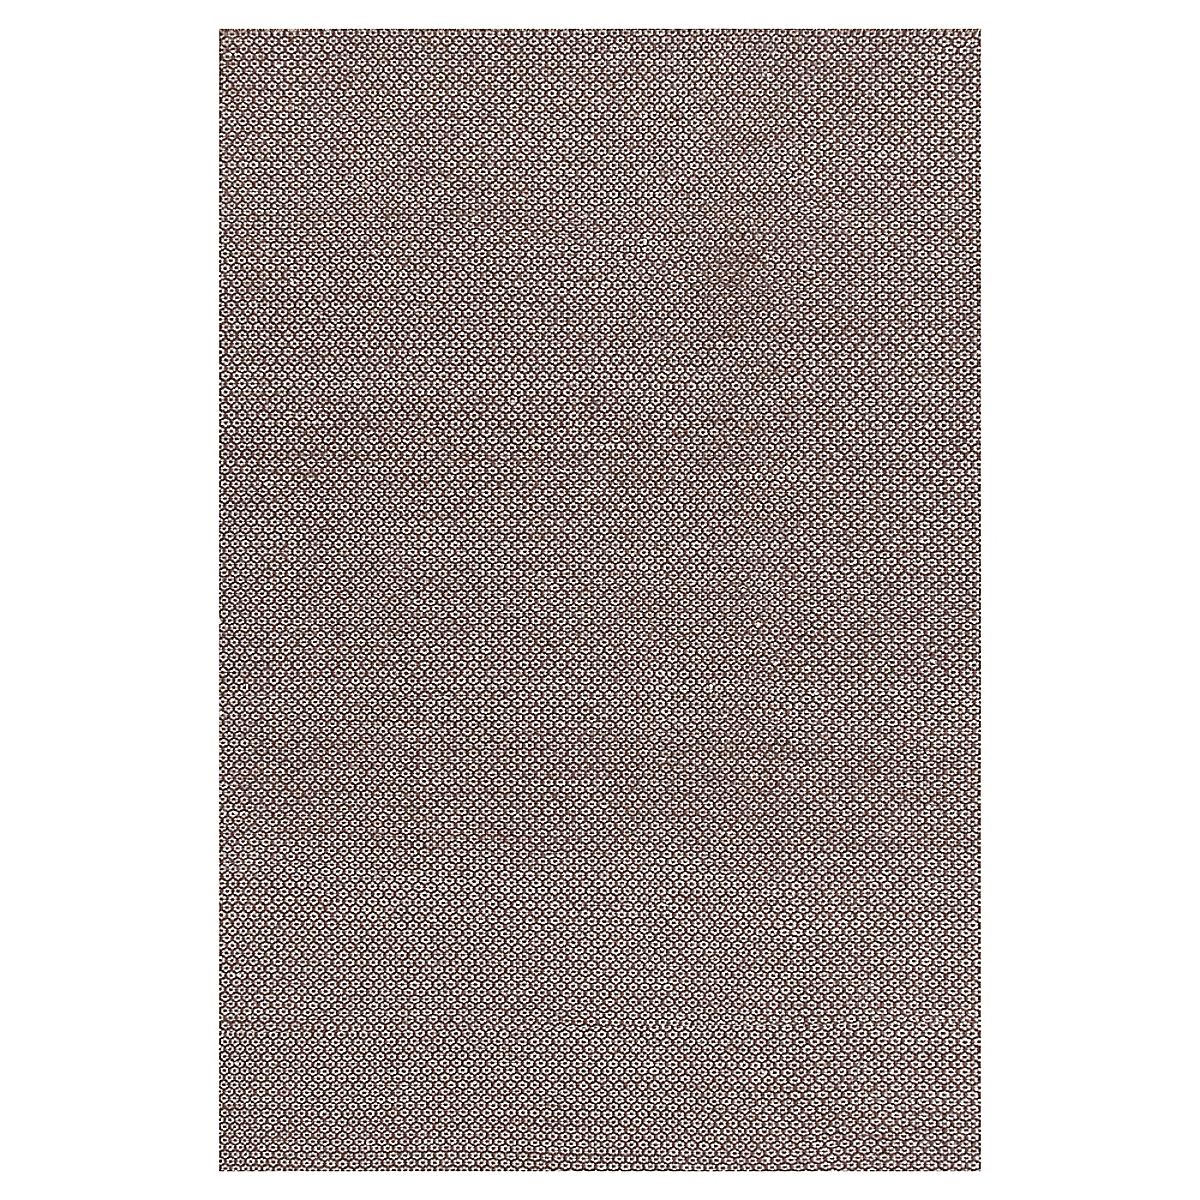 Honeycomb Chocolate Grey Wool Woven Rug